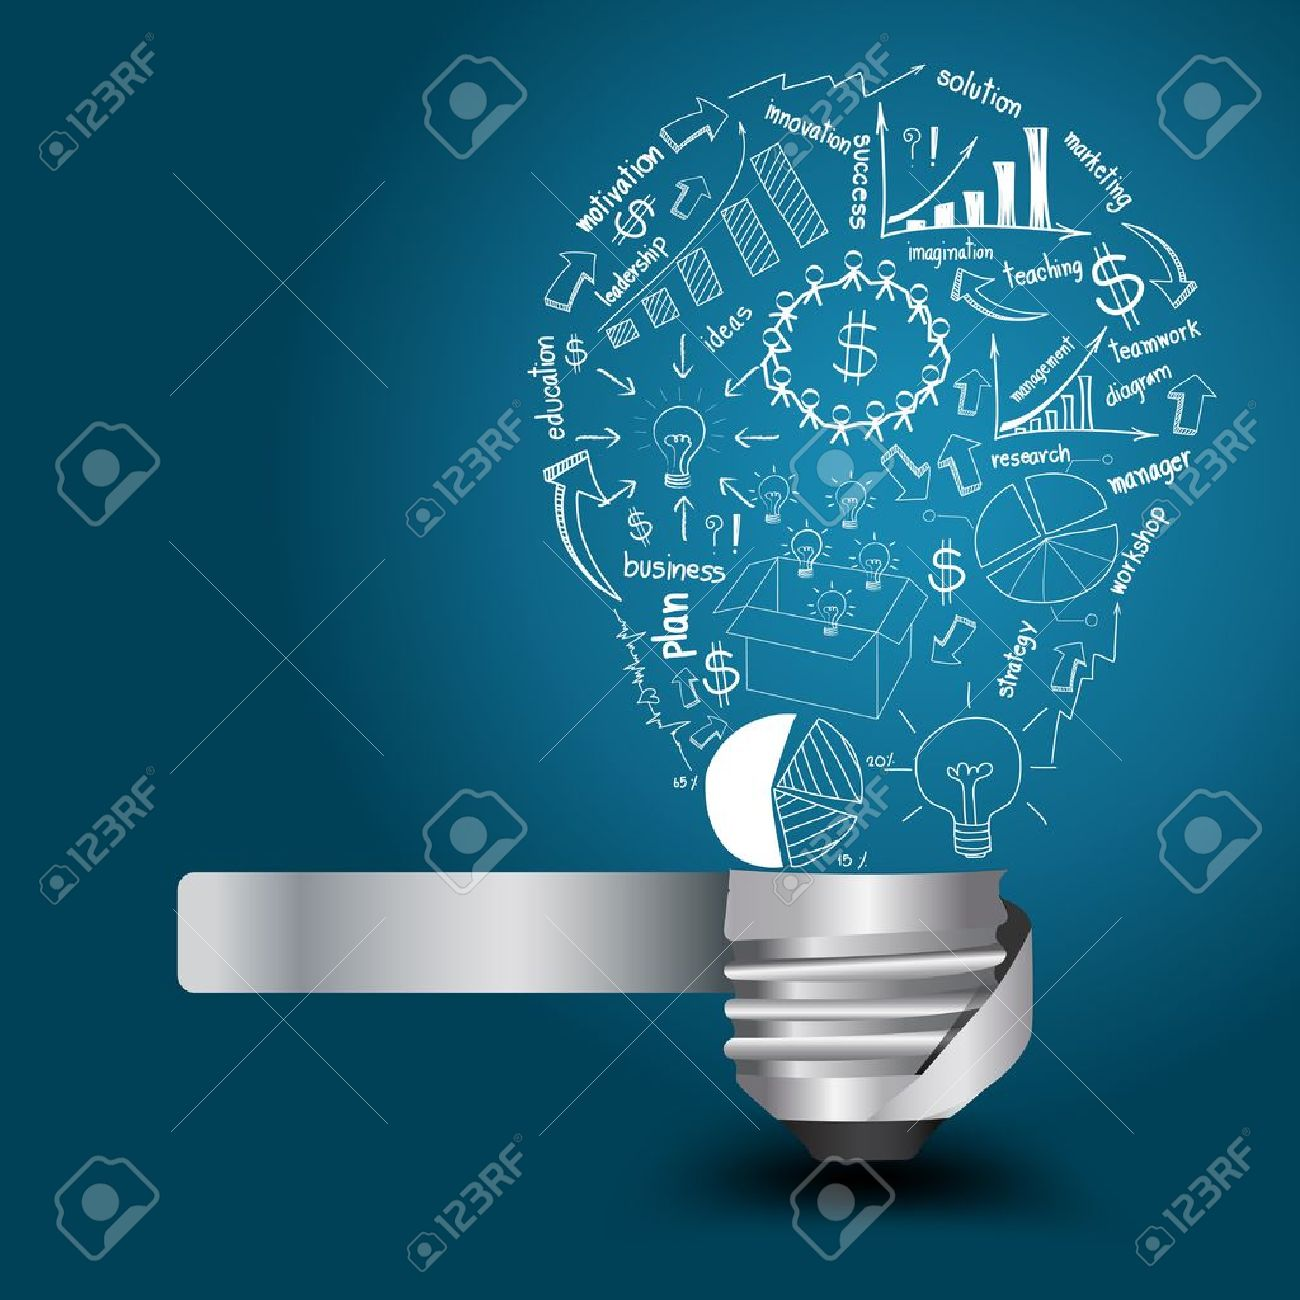 Creative light bulb with drawing business strategy plan concept idea, Vector illustration Modern template Design - 18309284